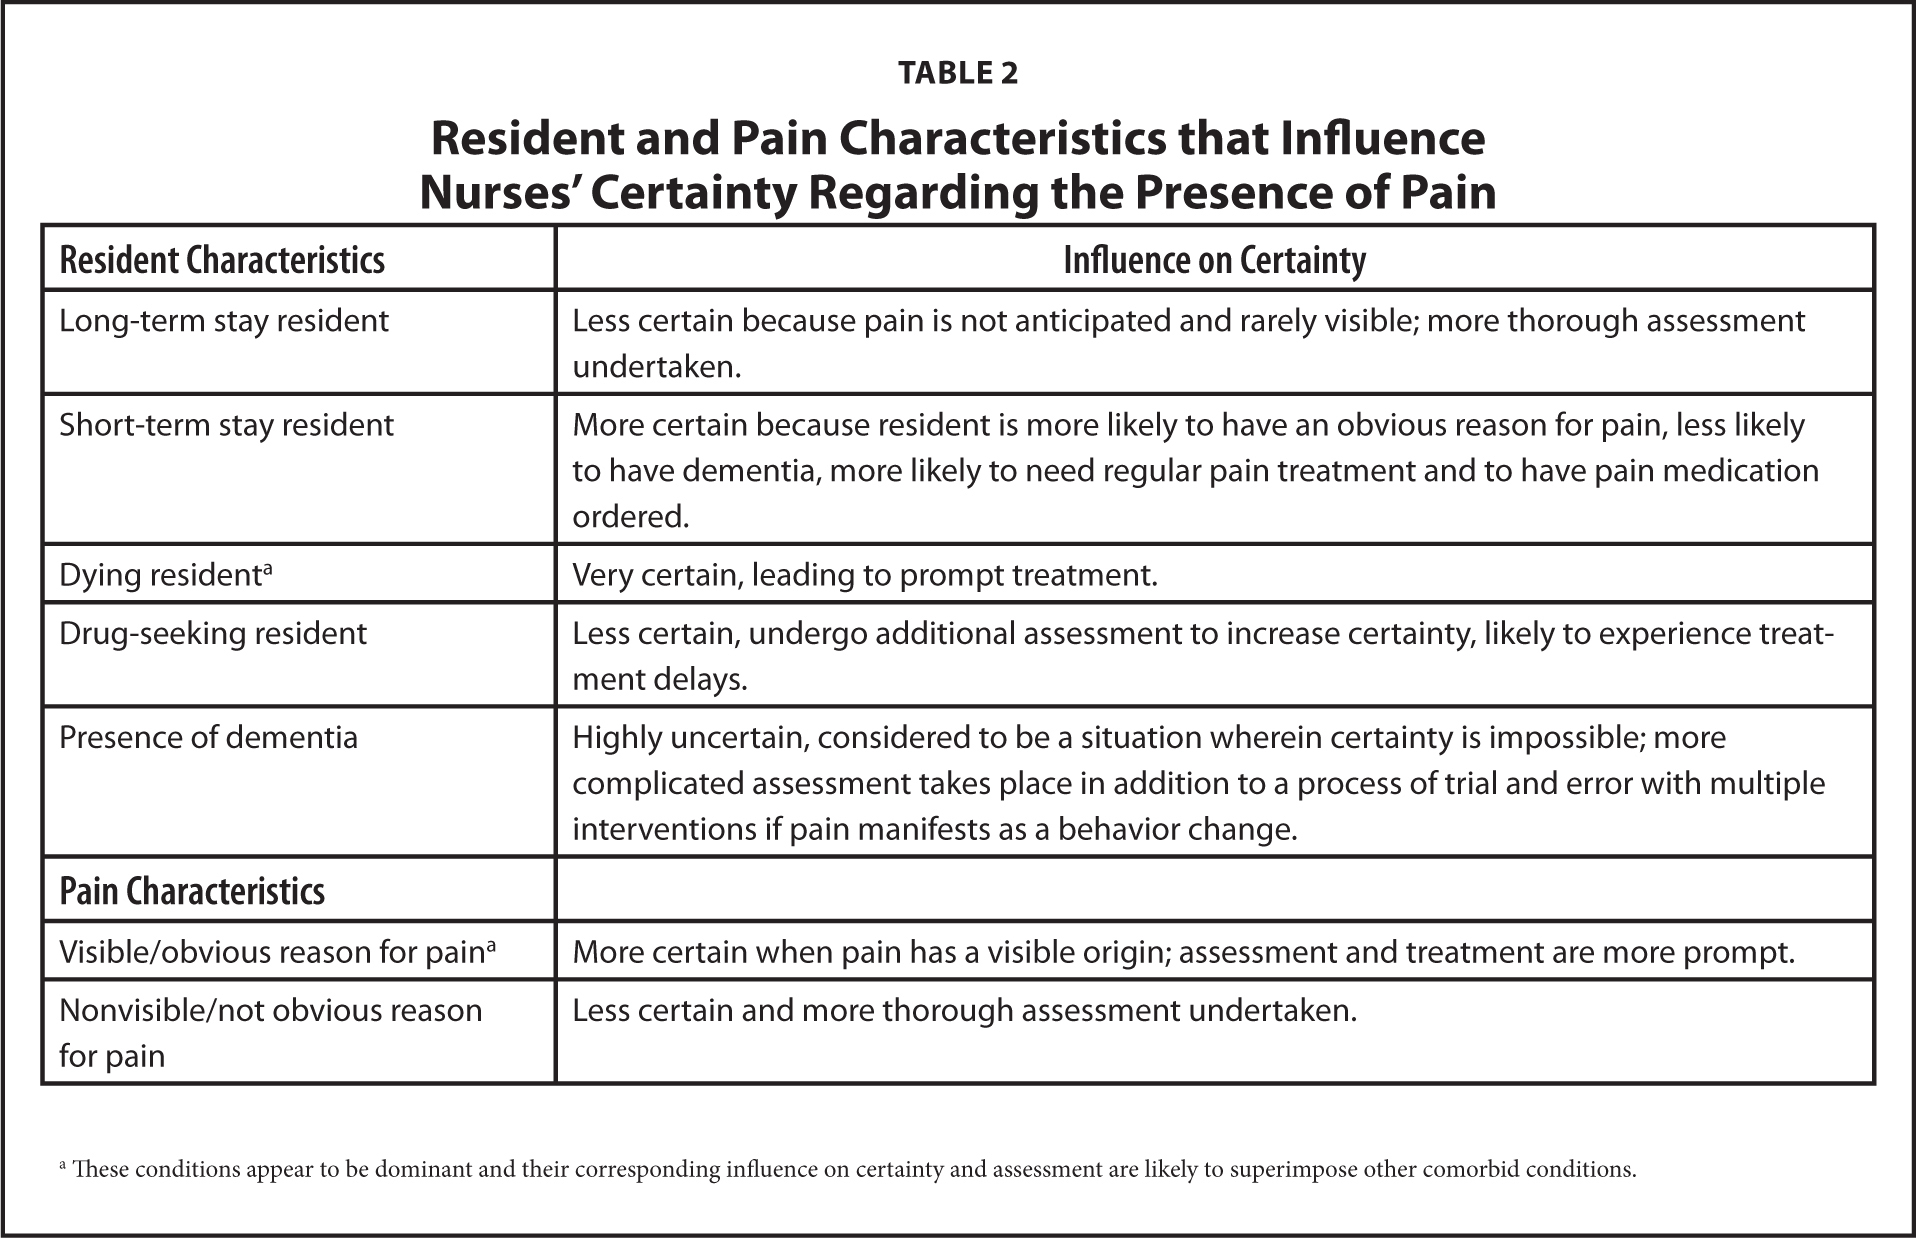 Resident and Pain Characteristics that Influence Nurses' Certainty Regarding the Presence of Pain